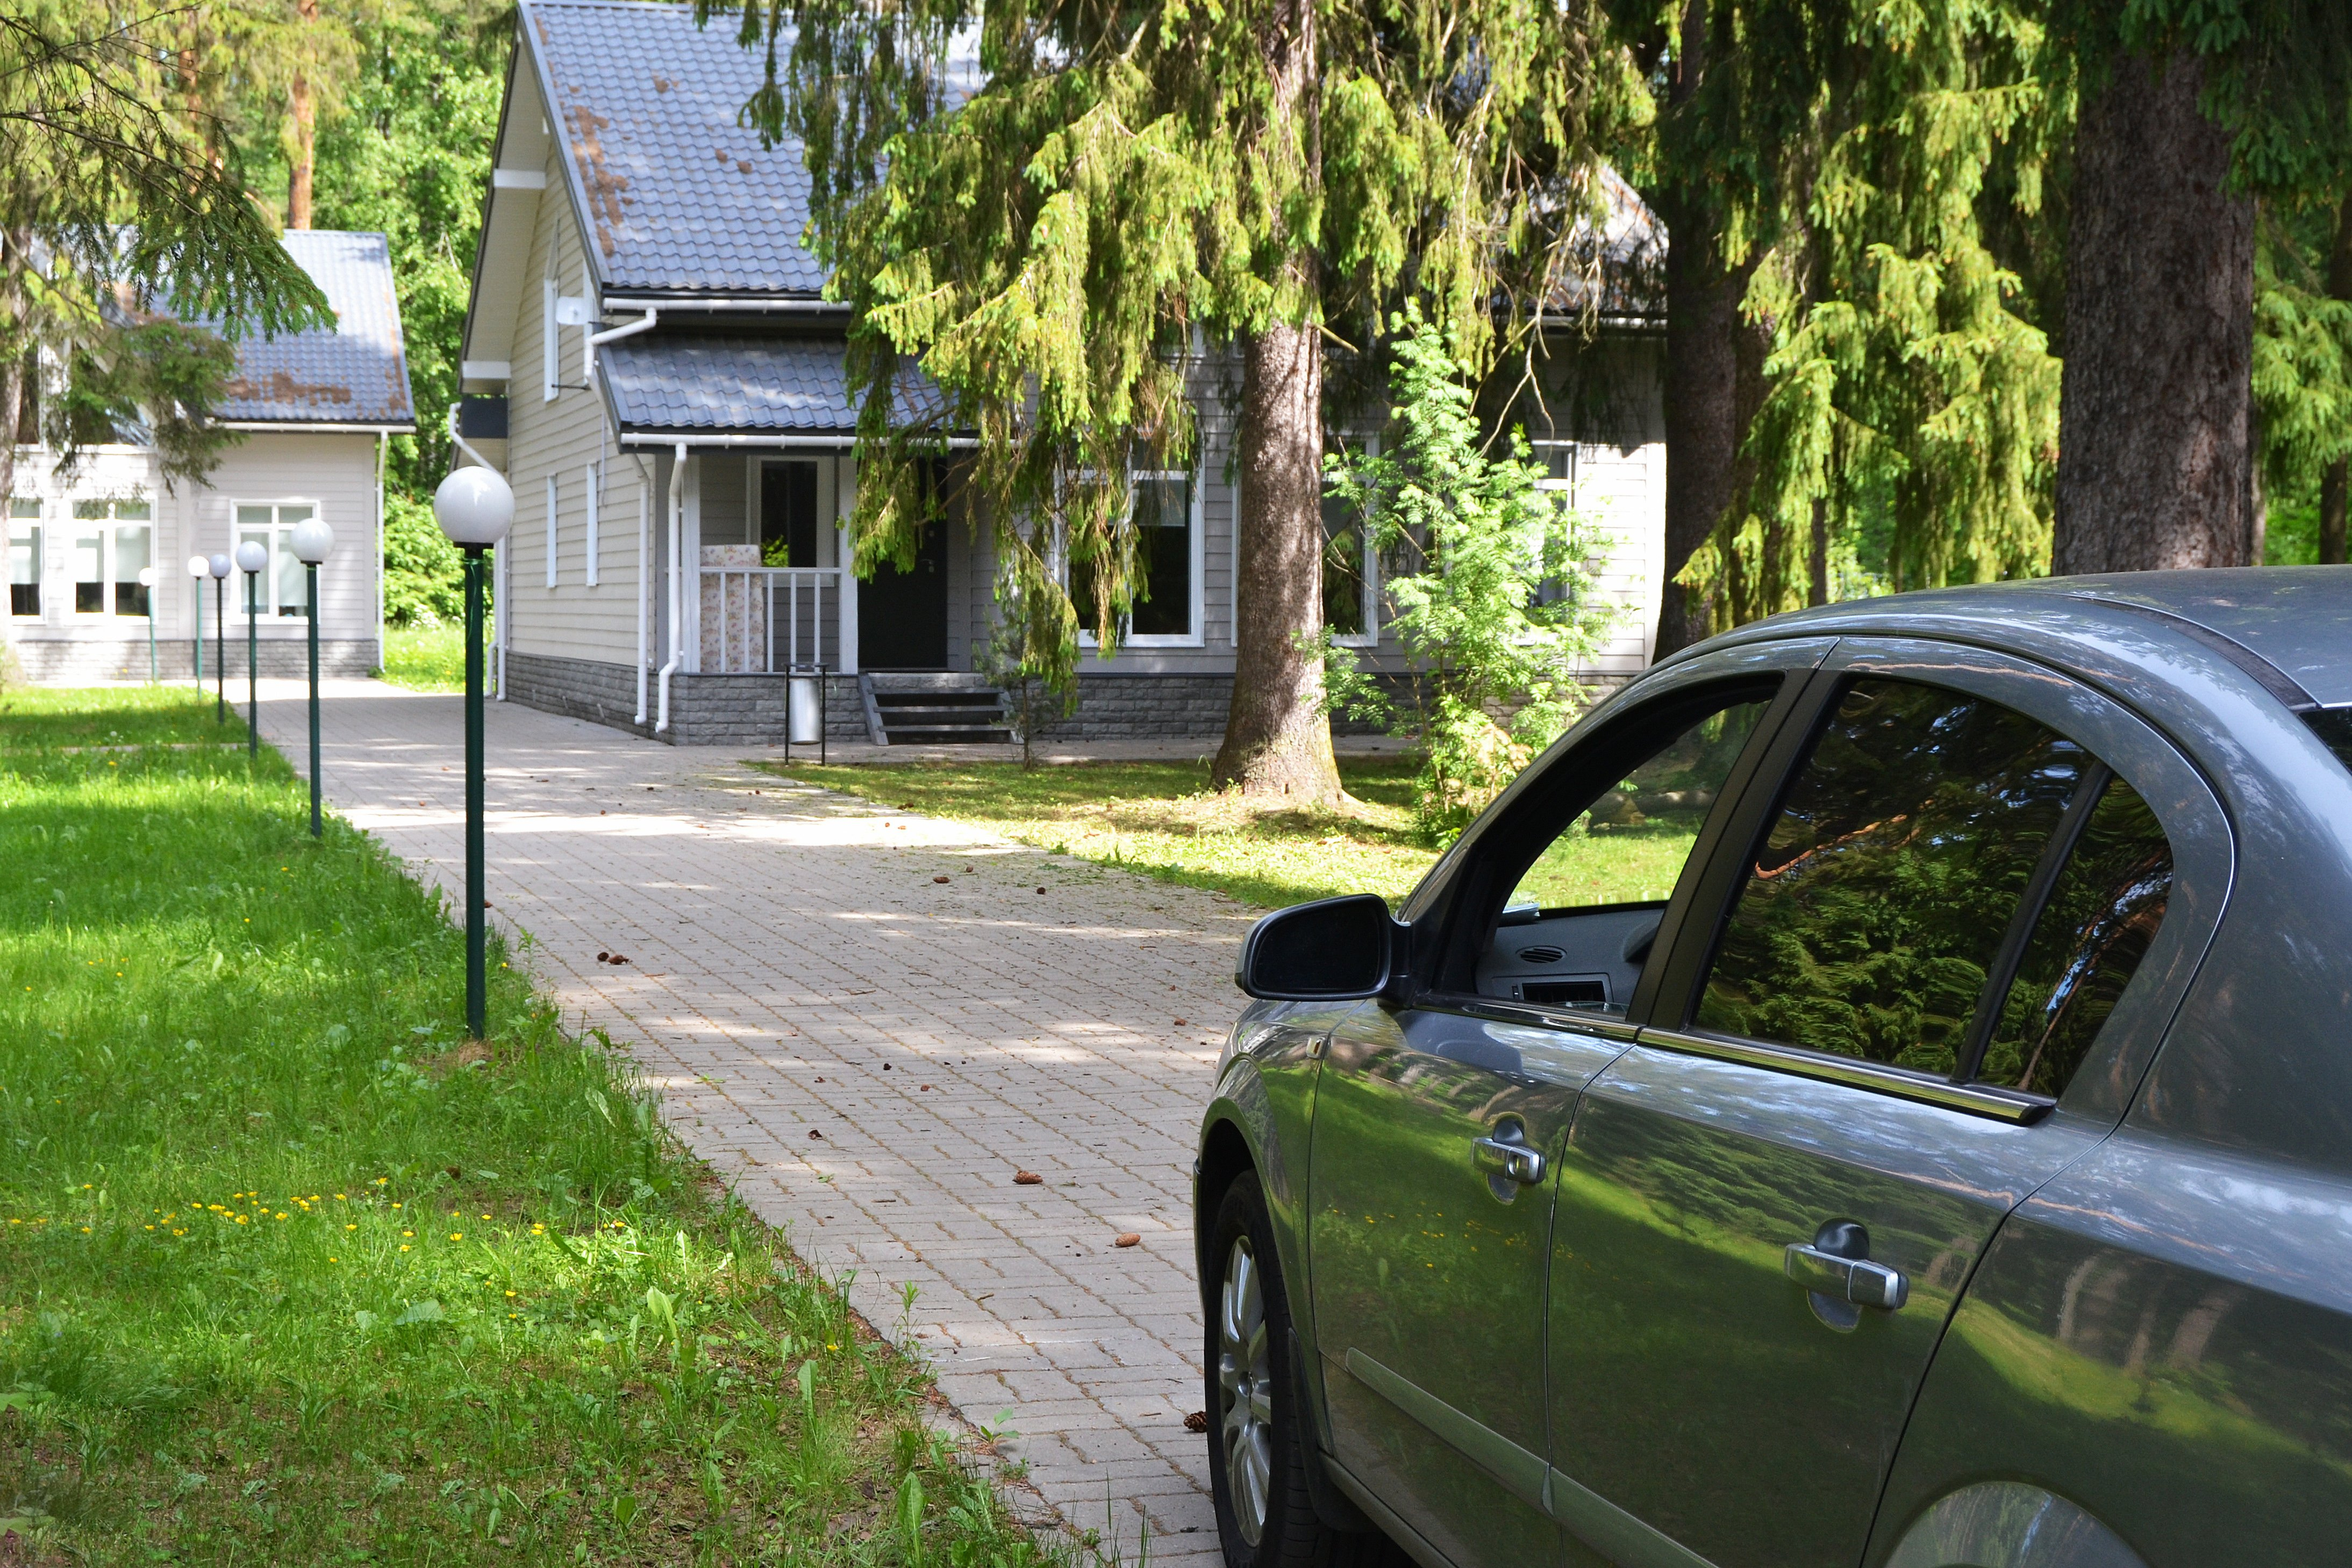 Car parked in the driveway of a suburban house | Photo: Shutterstock